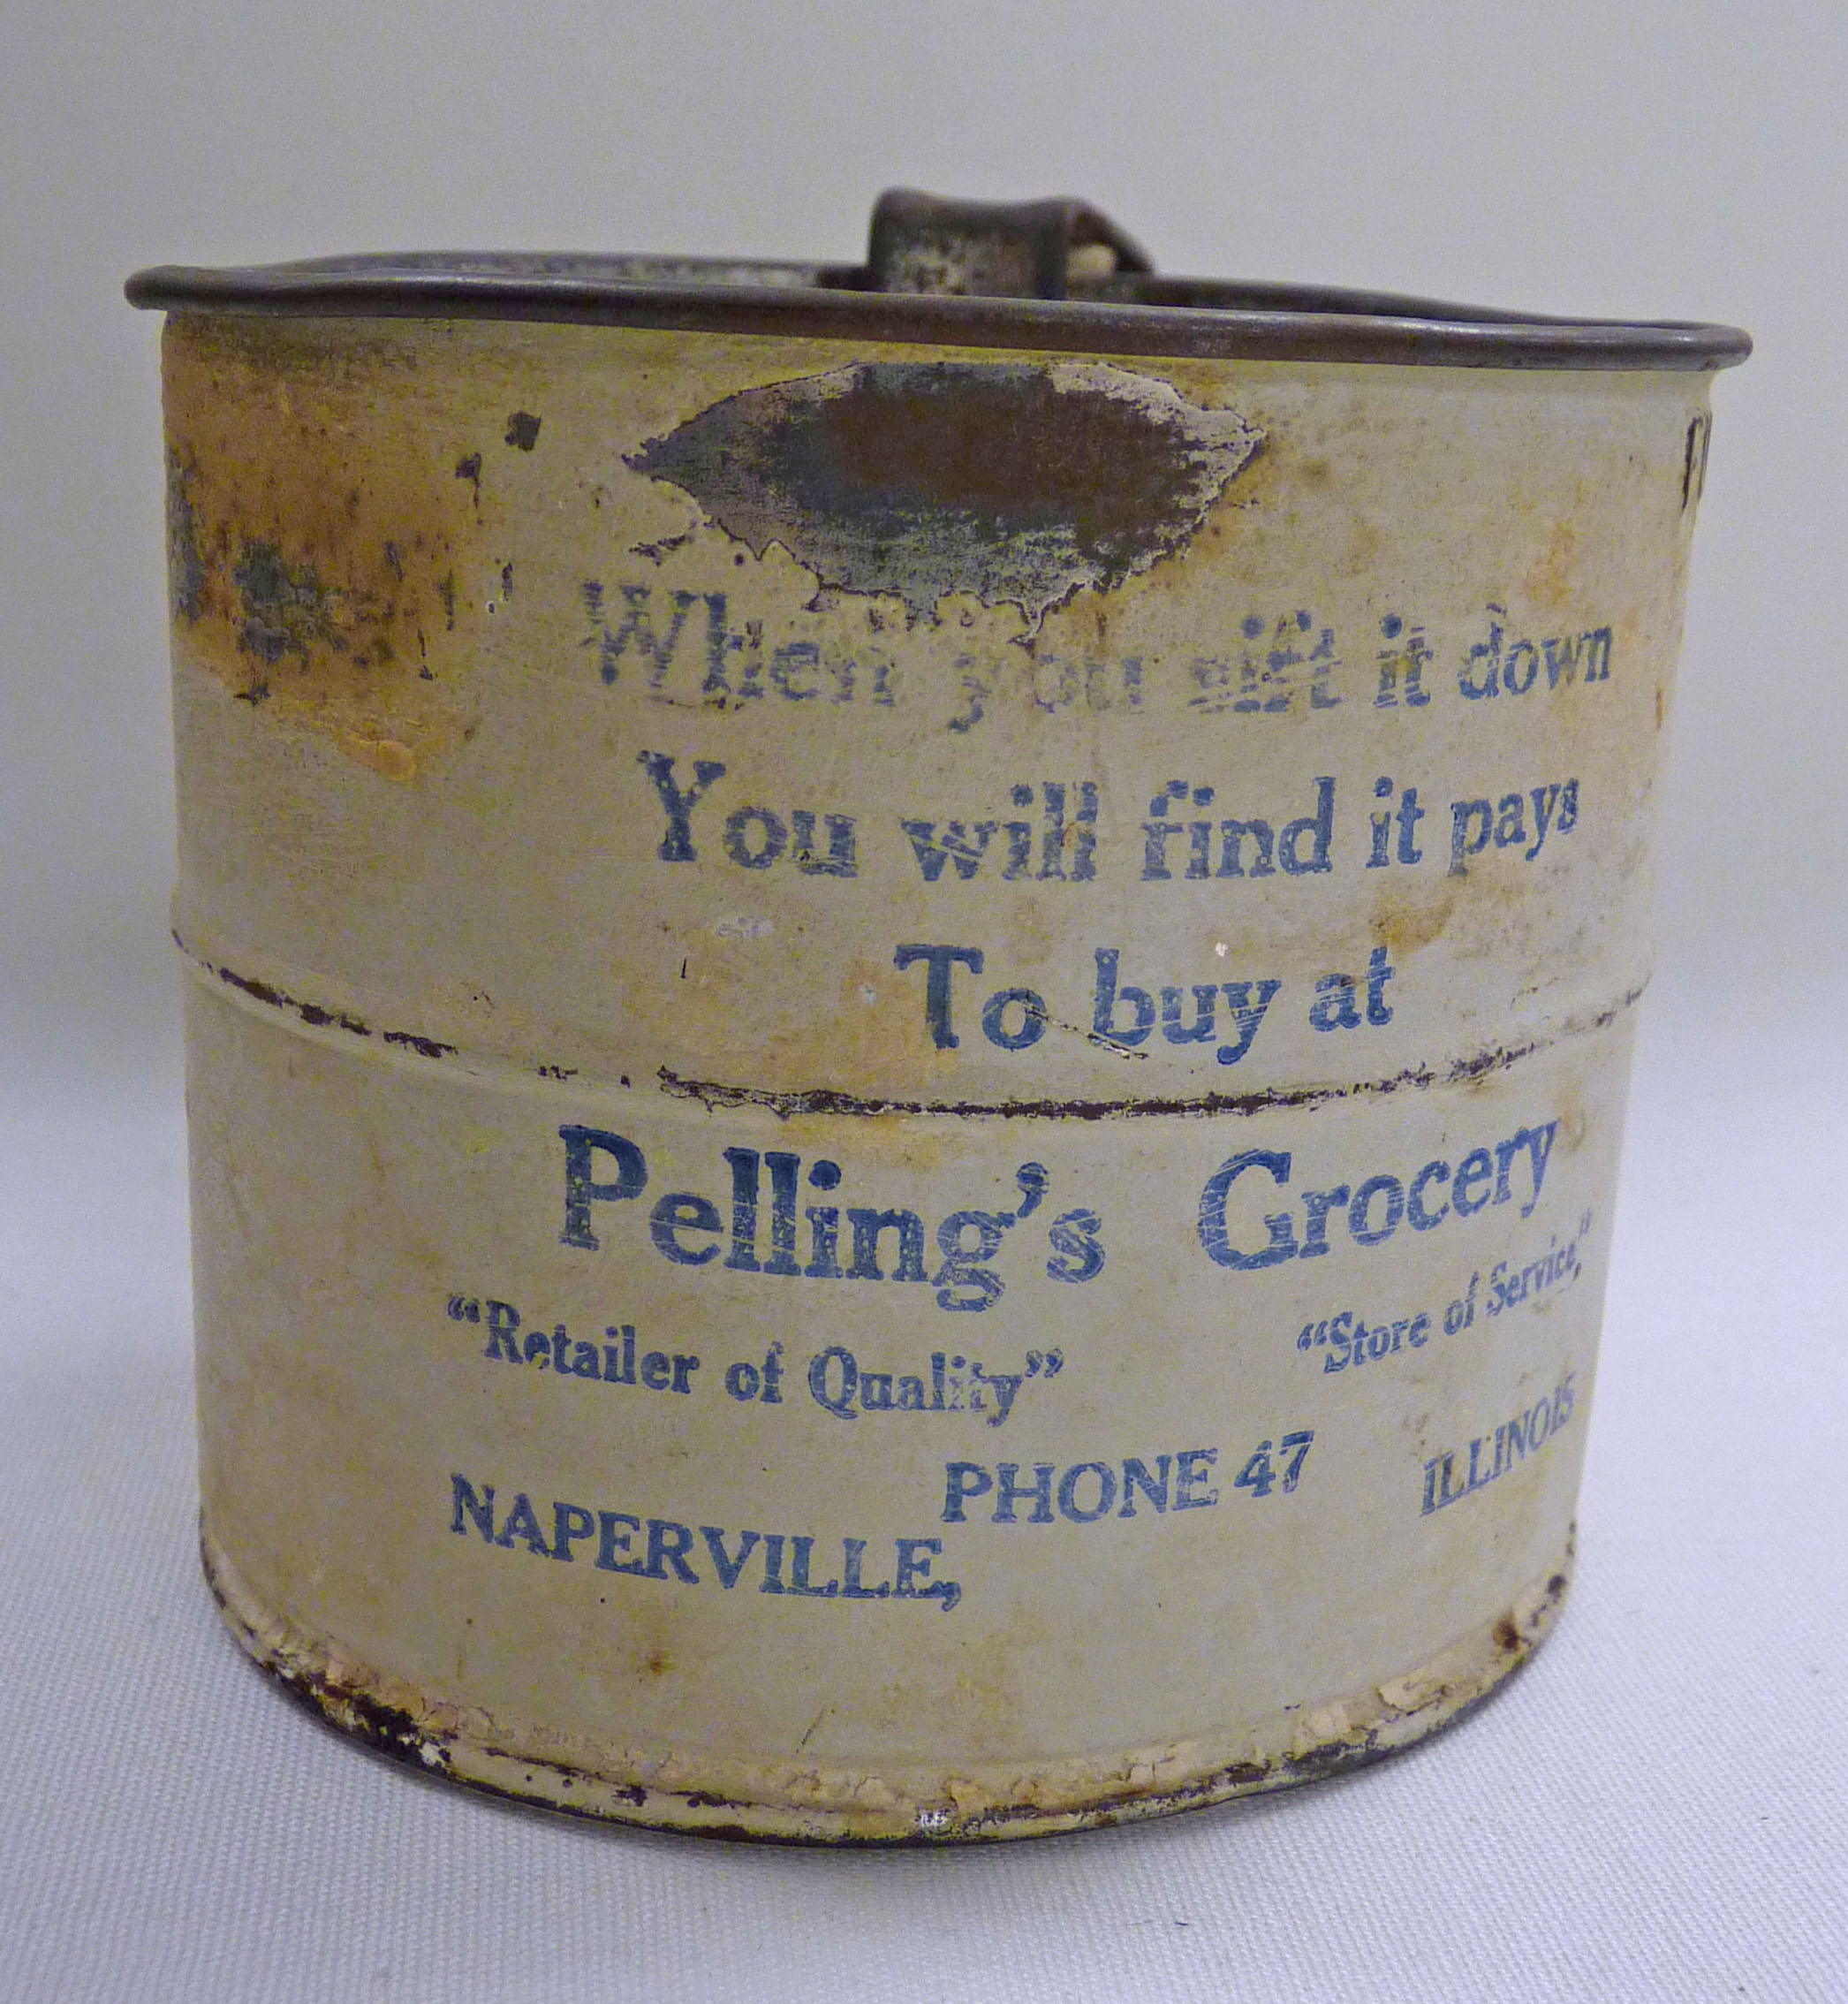 Pelling's Grocery Sifter